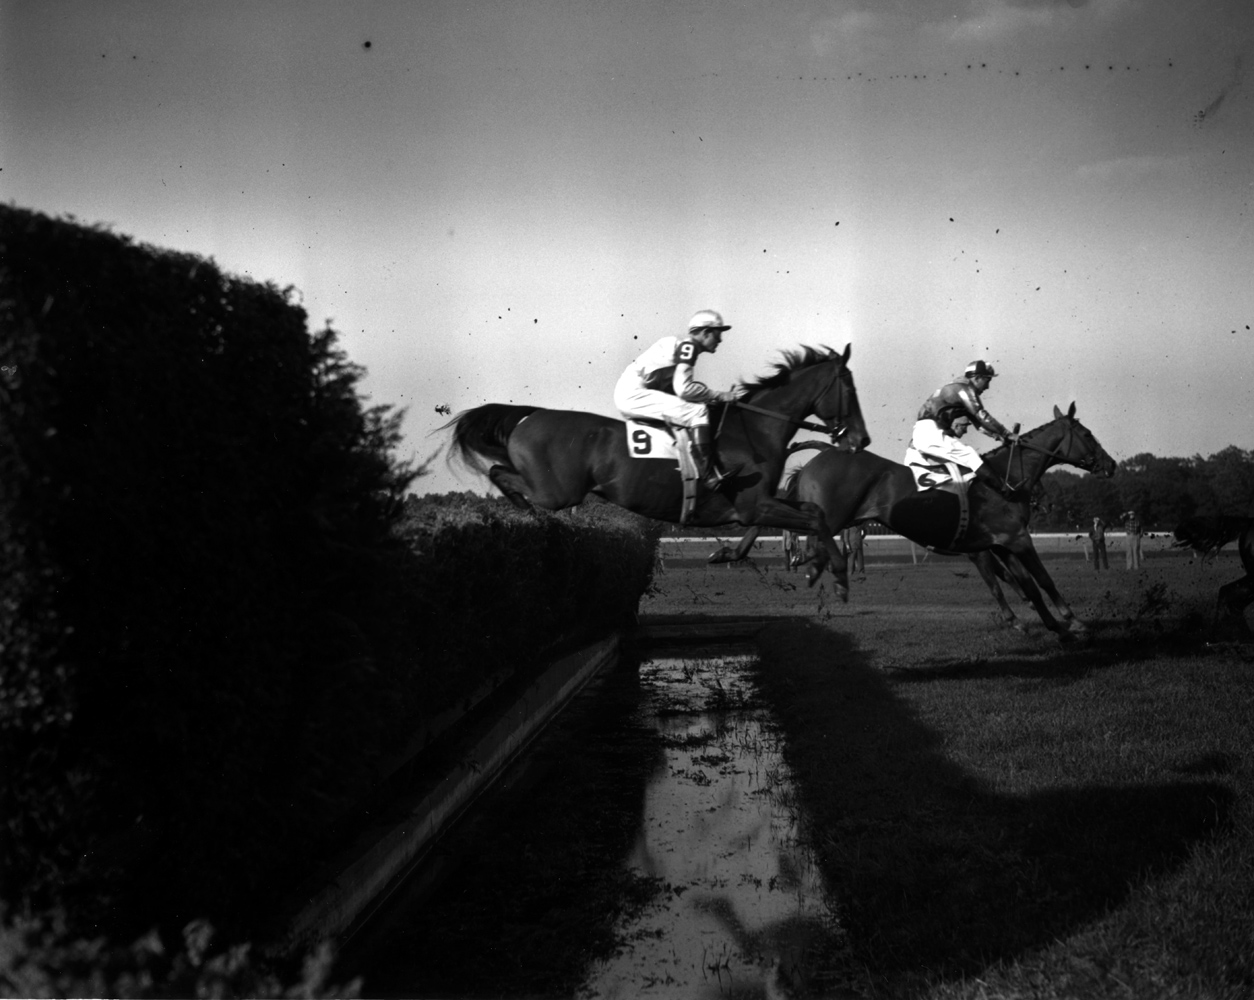 Alfred P. Smithwick and Elkridge taking a jump in the 1951 Grand National at Belmont Park (Keeneland Library Morgan Collection/Museum Collection)